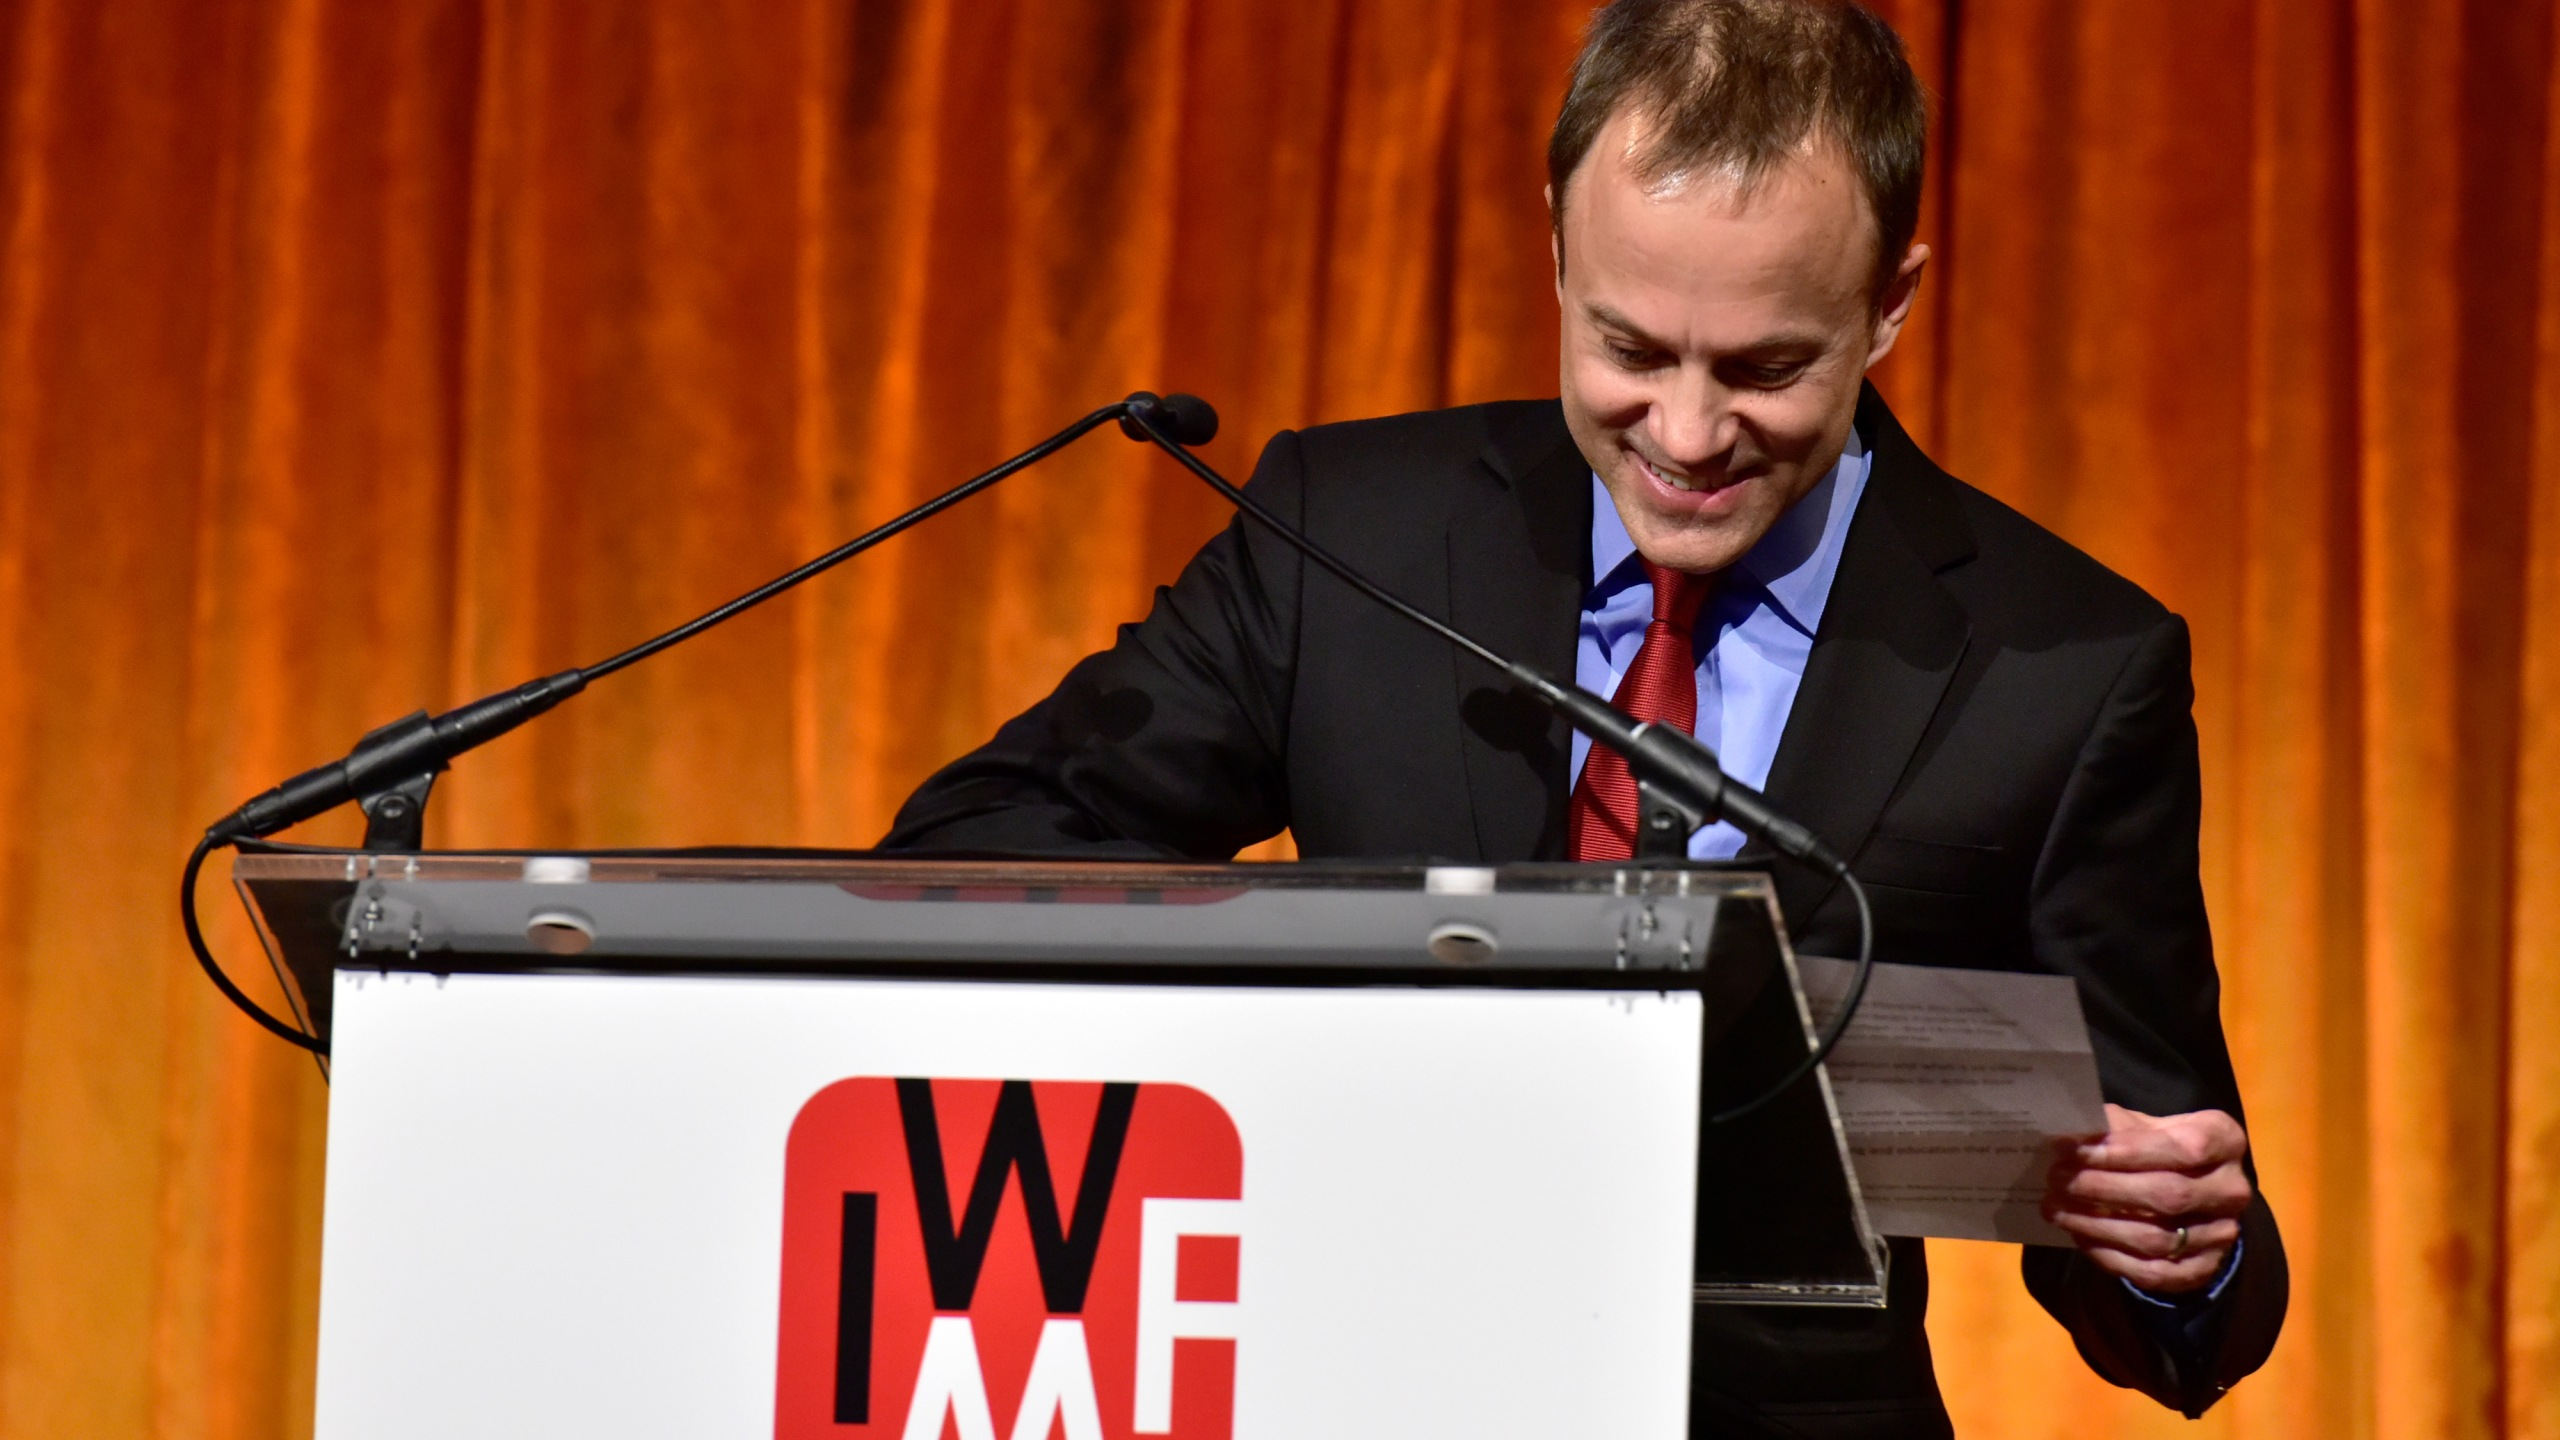 President of CBS News David Rhodes speaks onstage during the International Women's Media Foundation's 2018 Courage in Journalism Awards at Cipriani 42nd Street on October 25, 2018 in New York City. (Credit: Eugene Gologursky/Getty Images)